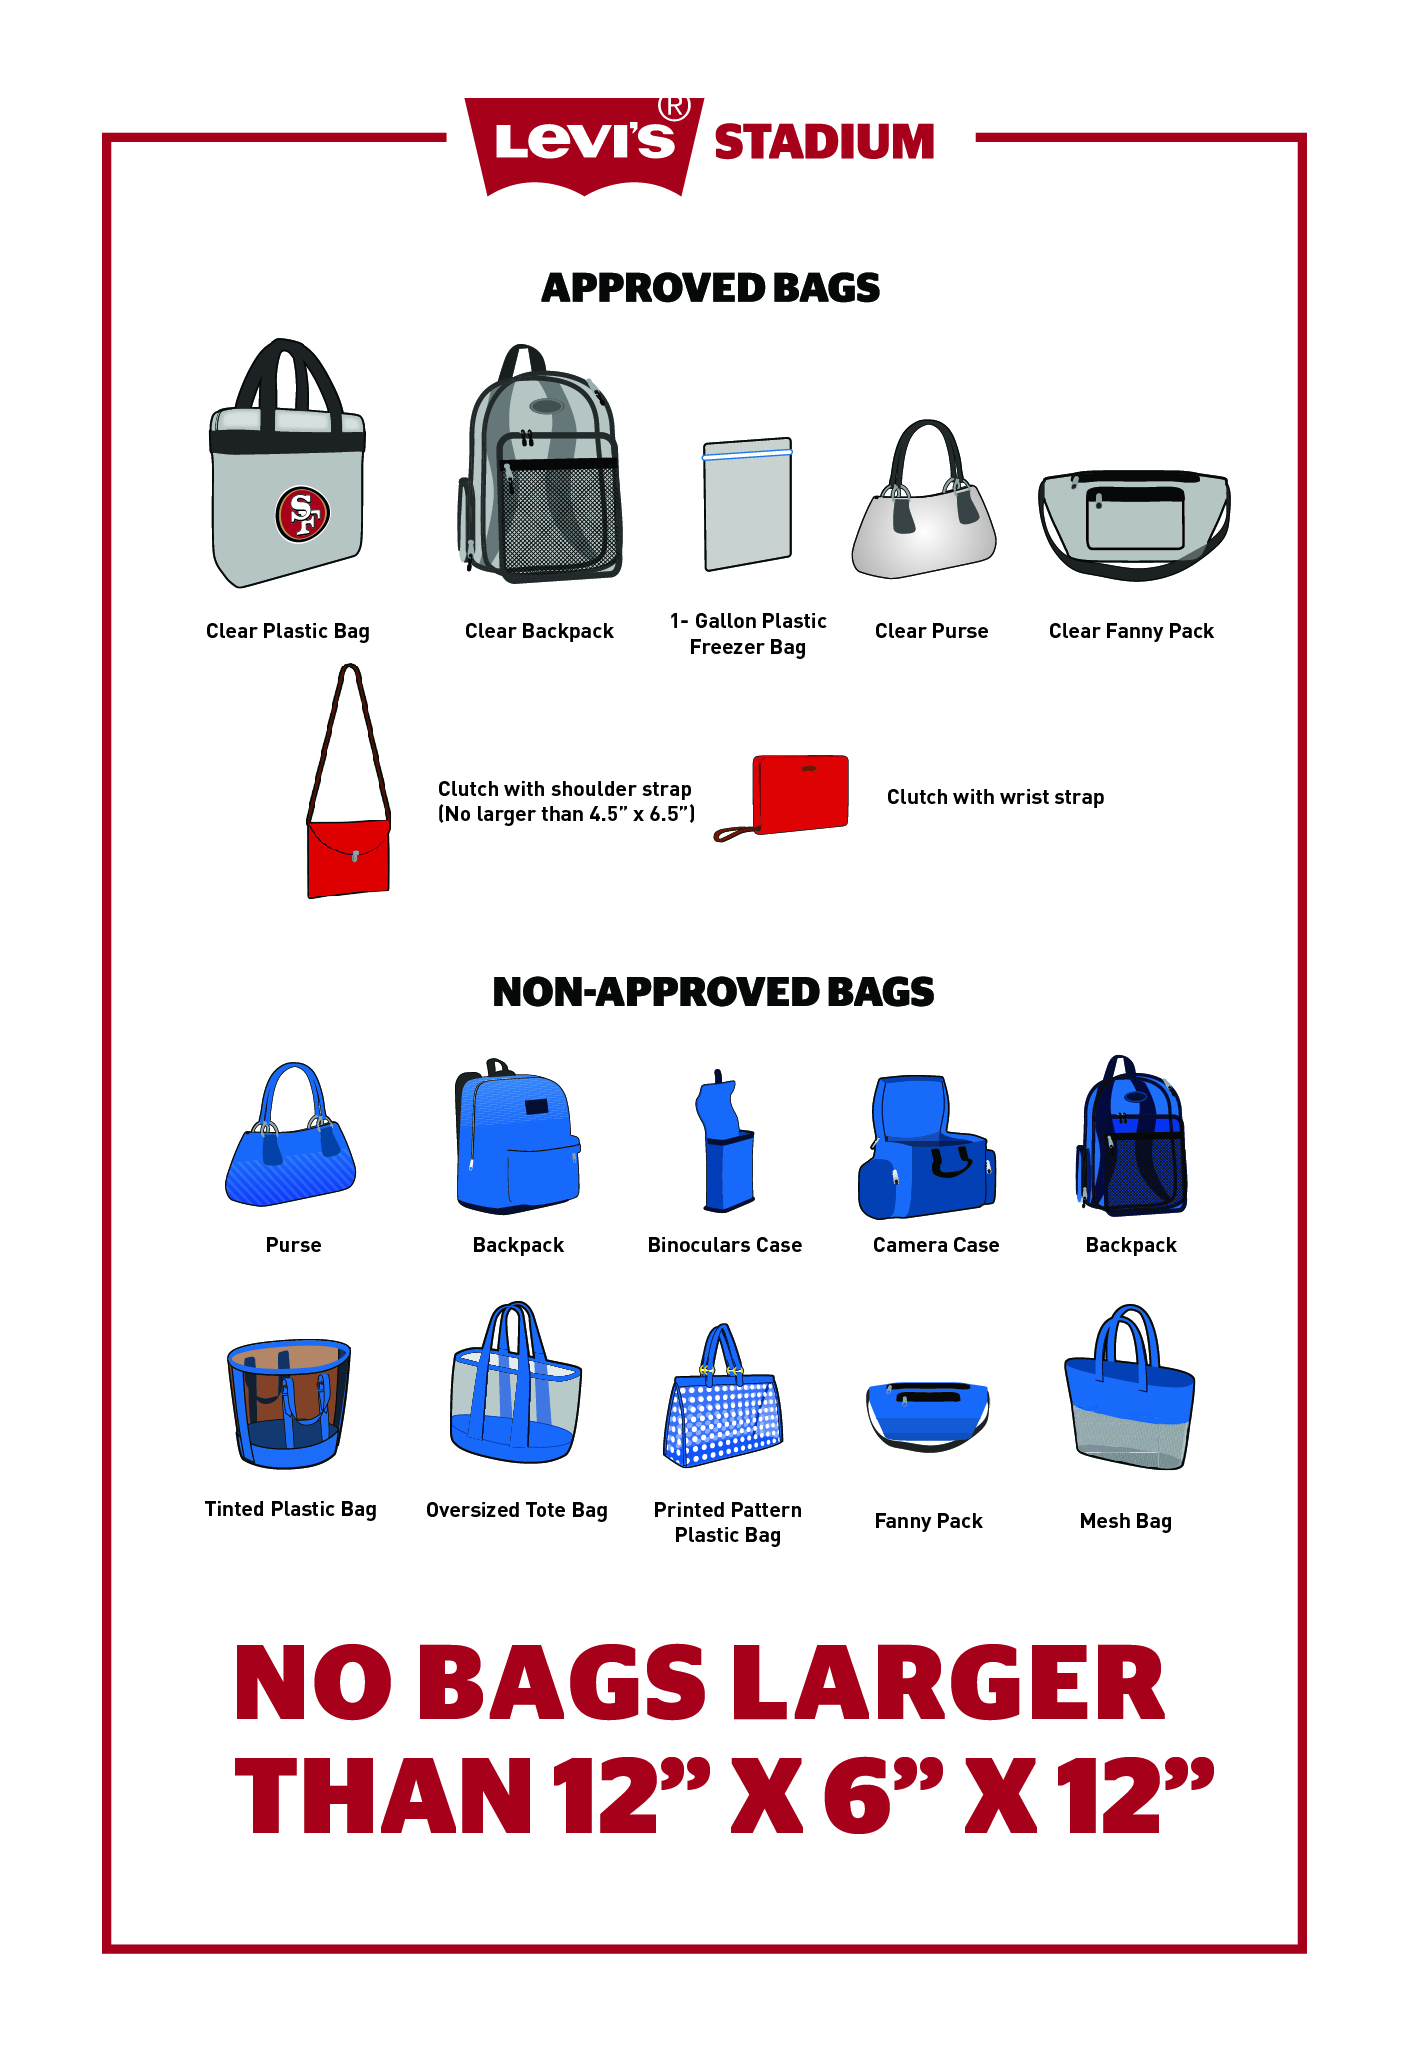 All Roved Bags Are Subject To Inspection Upon Entry And Additional Inspections Within The Stadium